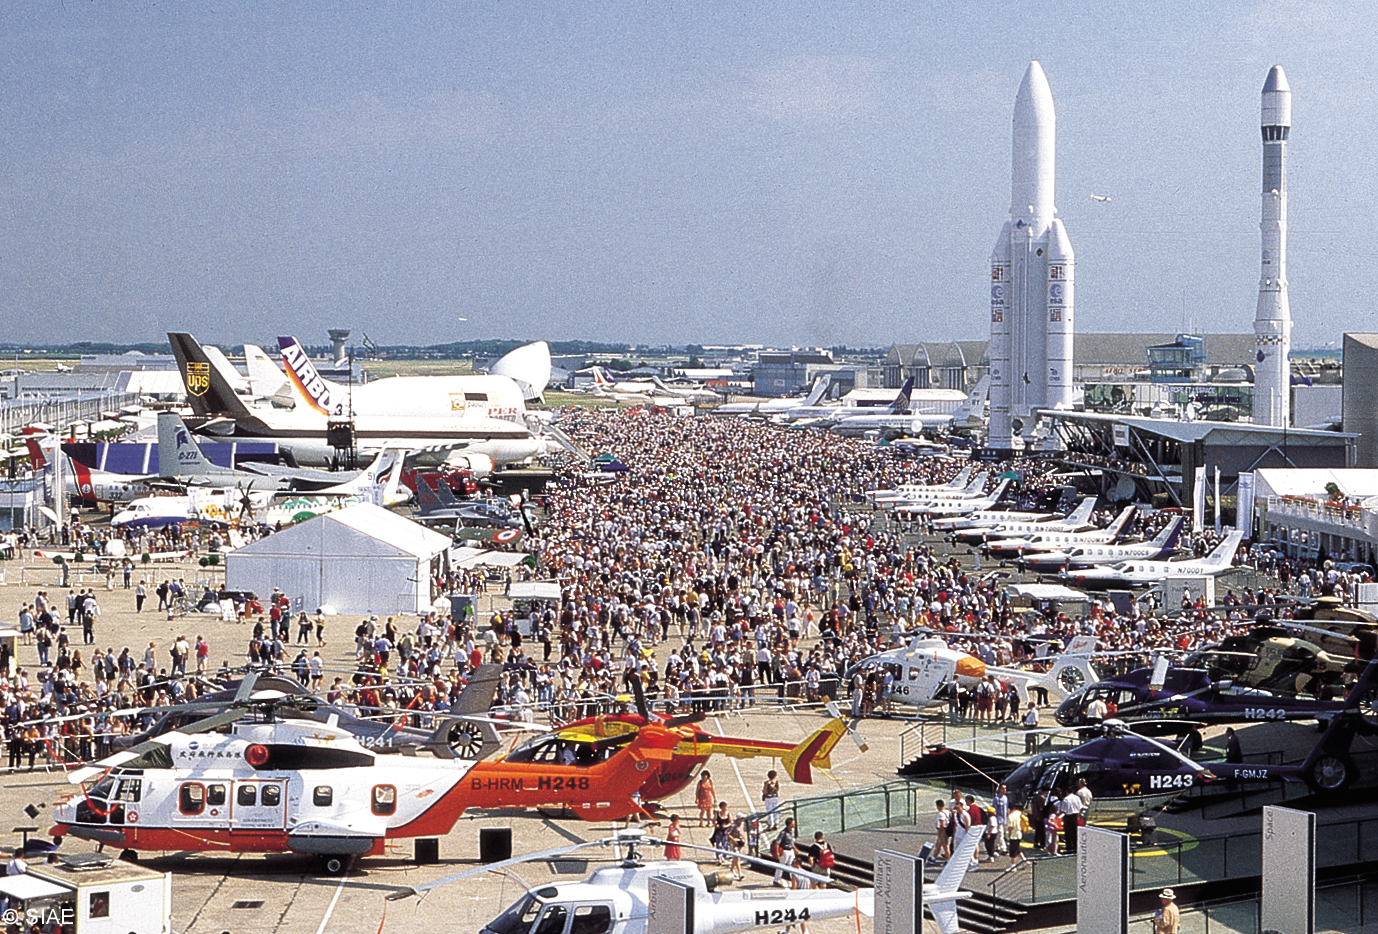 Le Bourget France  city photos gallery : Thousands of people attend this airshow, and it is definitely worth ...